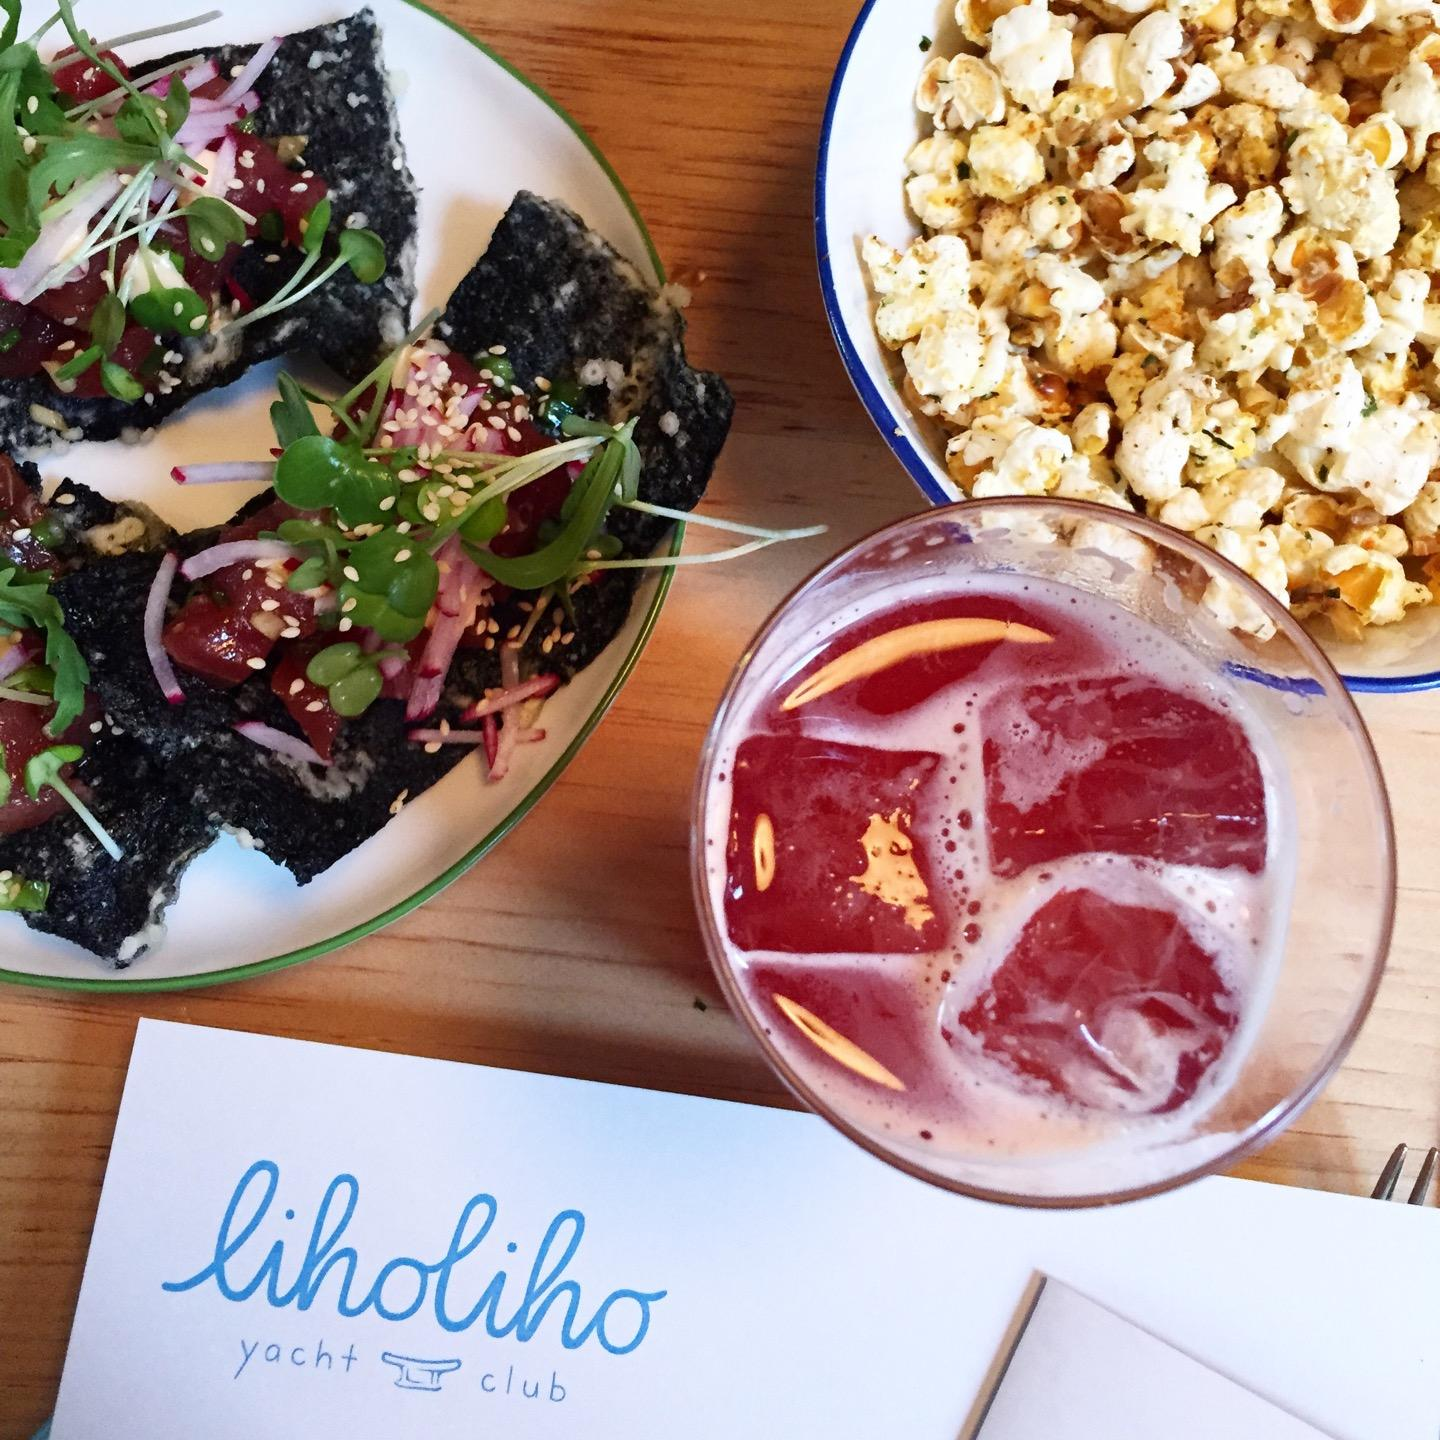 Reasons to eat out in San Francisco - Liholiho Yacht Club